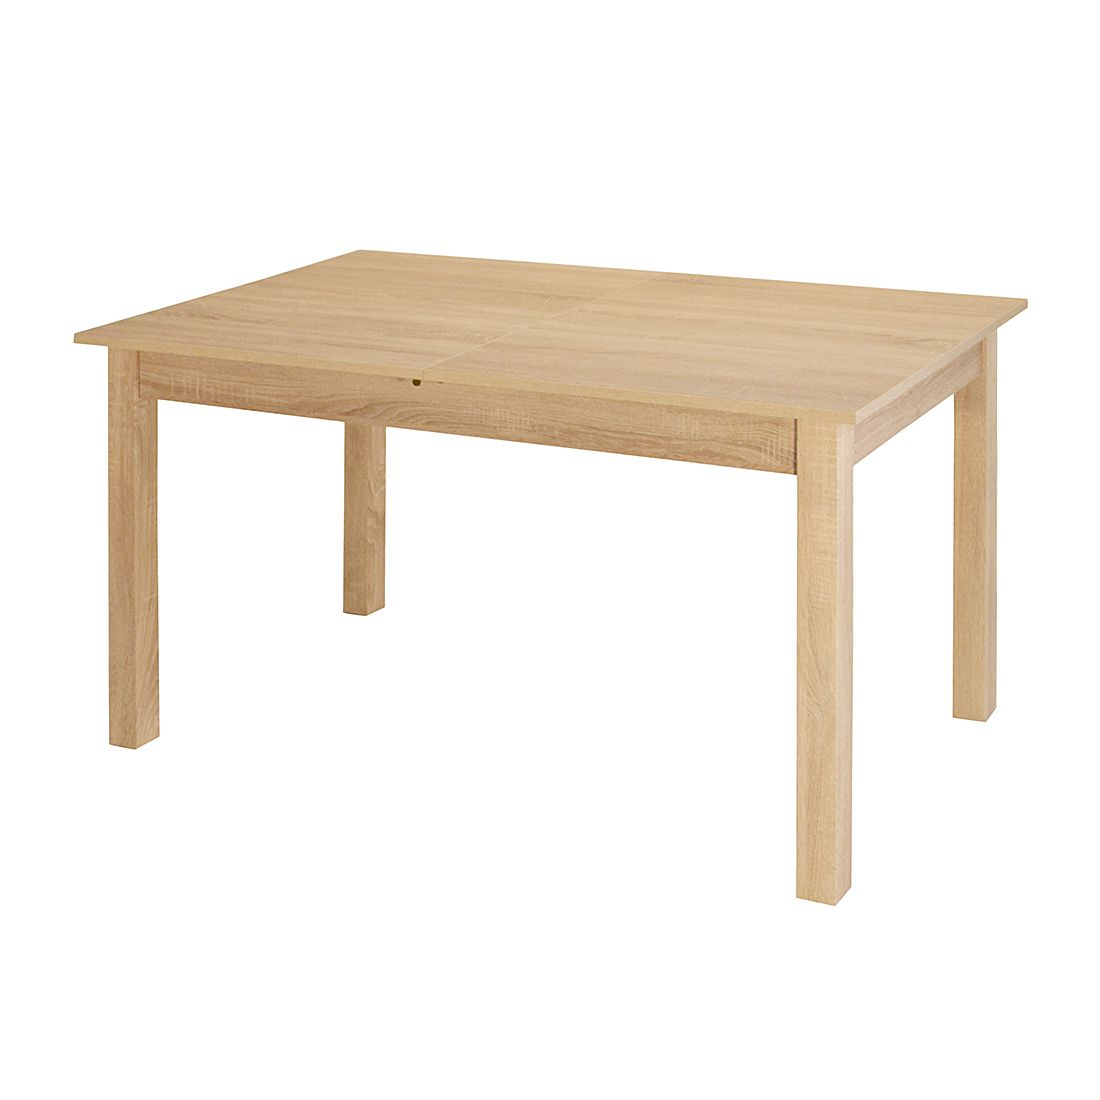 Pied de table guide d 39 achat for Table extractible